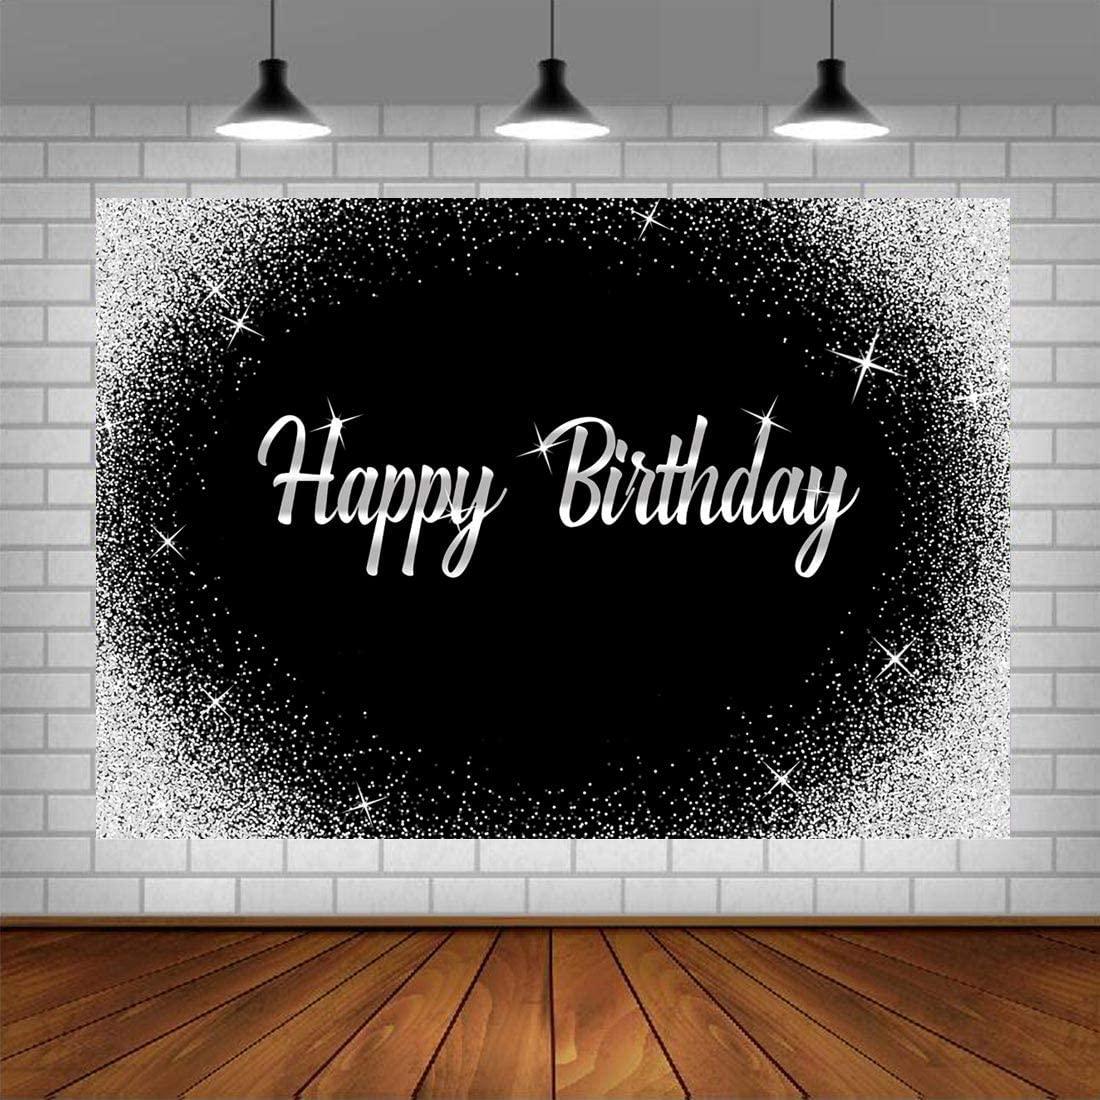 Happy Birthday Backdrop Glitter Silver Dots and Black Photography Background 5x3ft Birthday Party Decorations Banner for Any Age Men Women